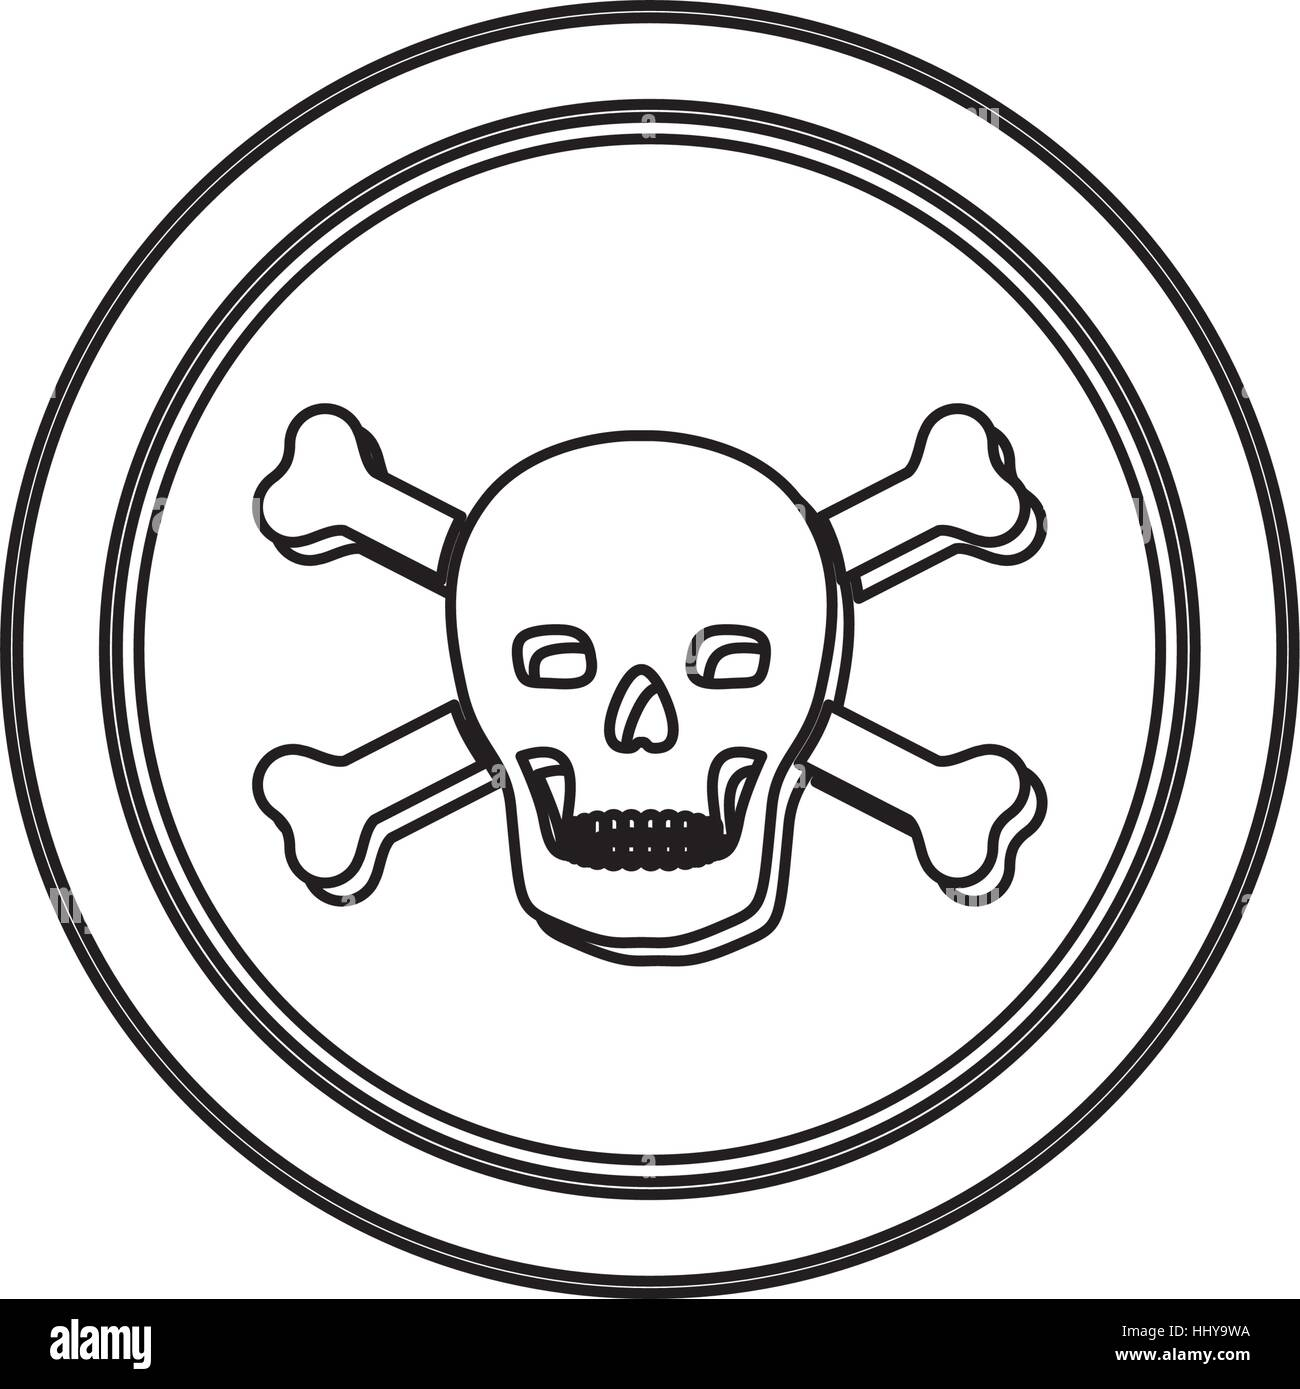 monochrome contour in circle with skull and bones vector illustration - Stock Vector